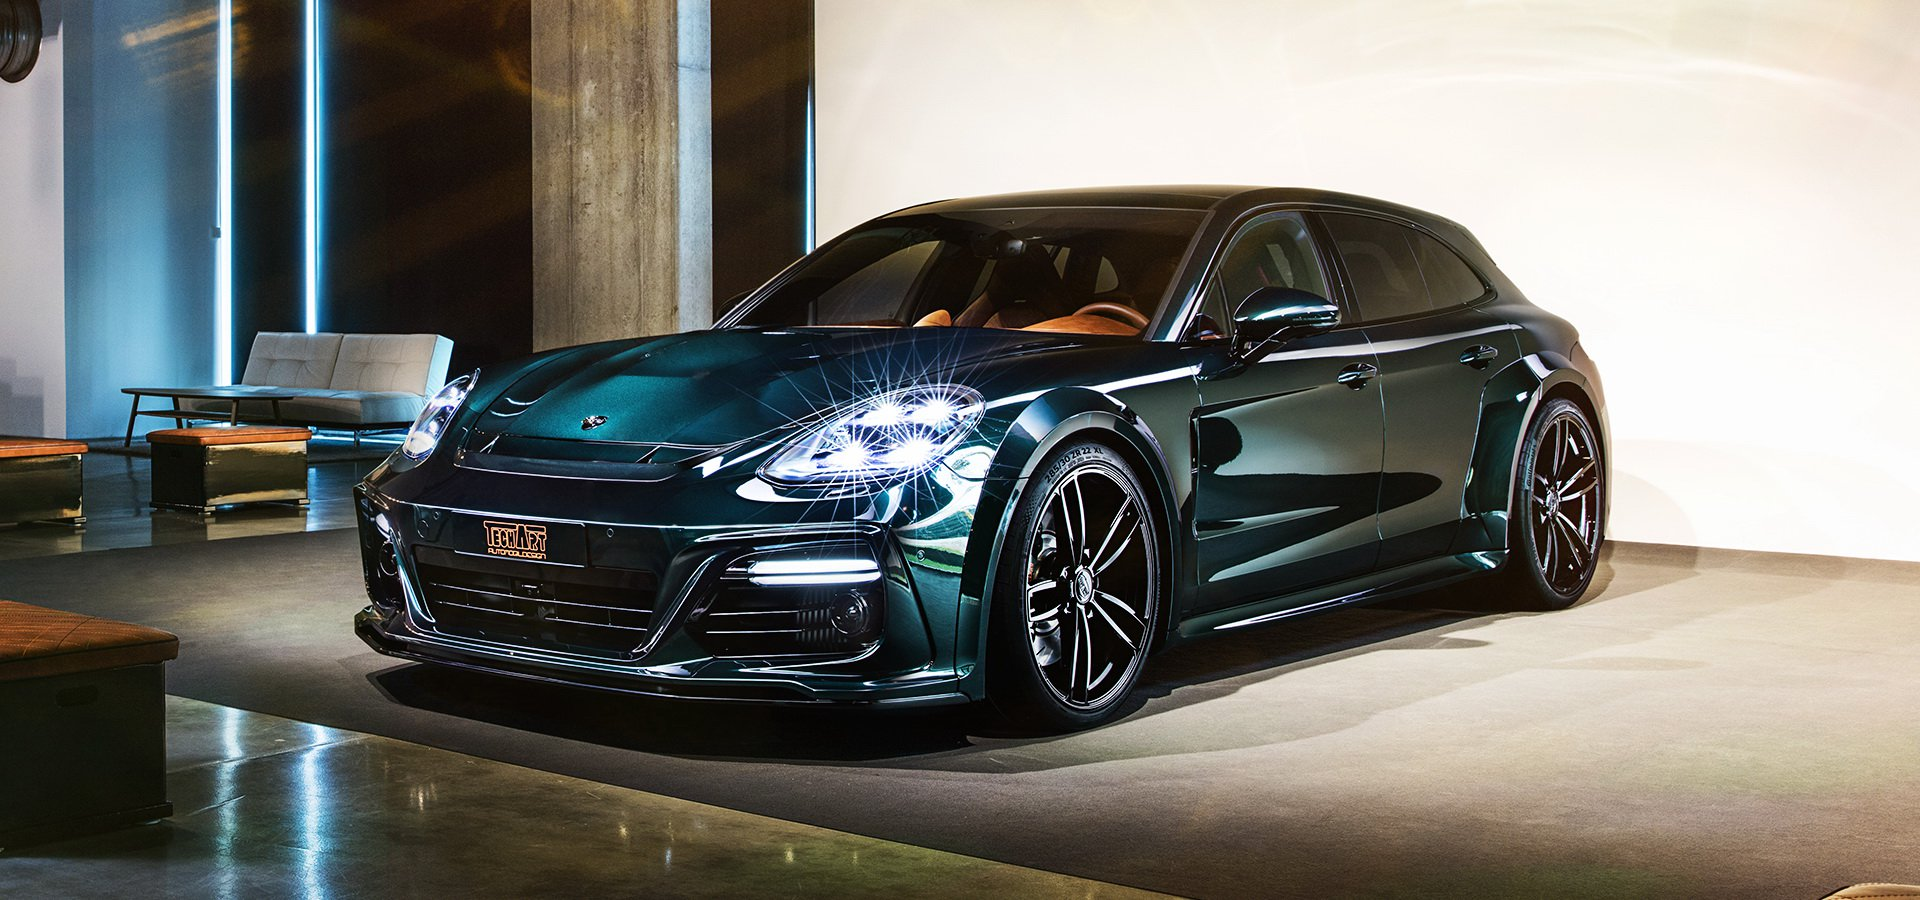 A while ago, two renowned tuners – TechArt and Mansory – have released custom tuning kits for the Porsche Panamera Sport Turismo